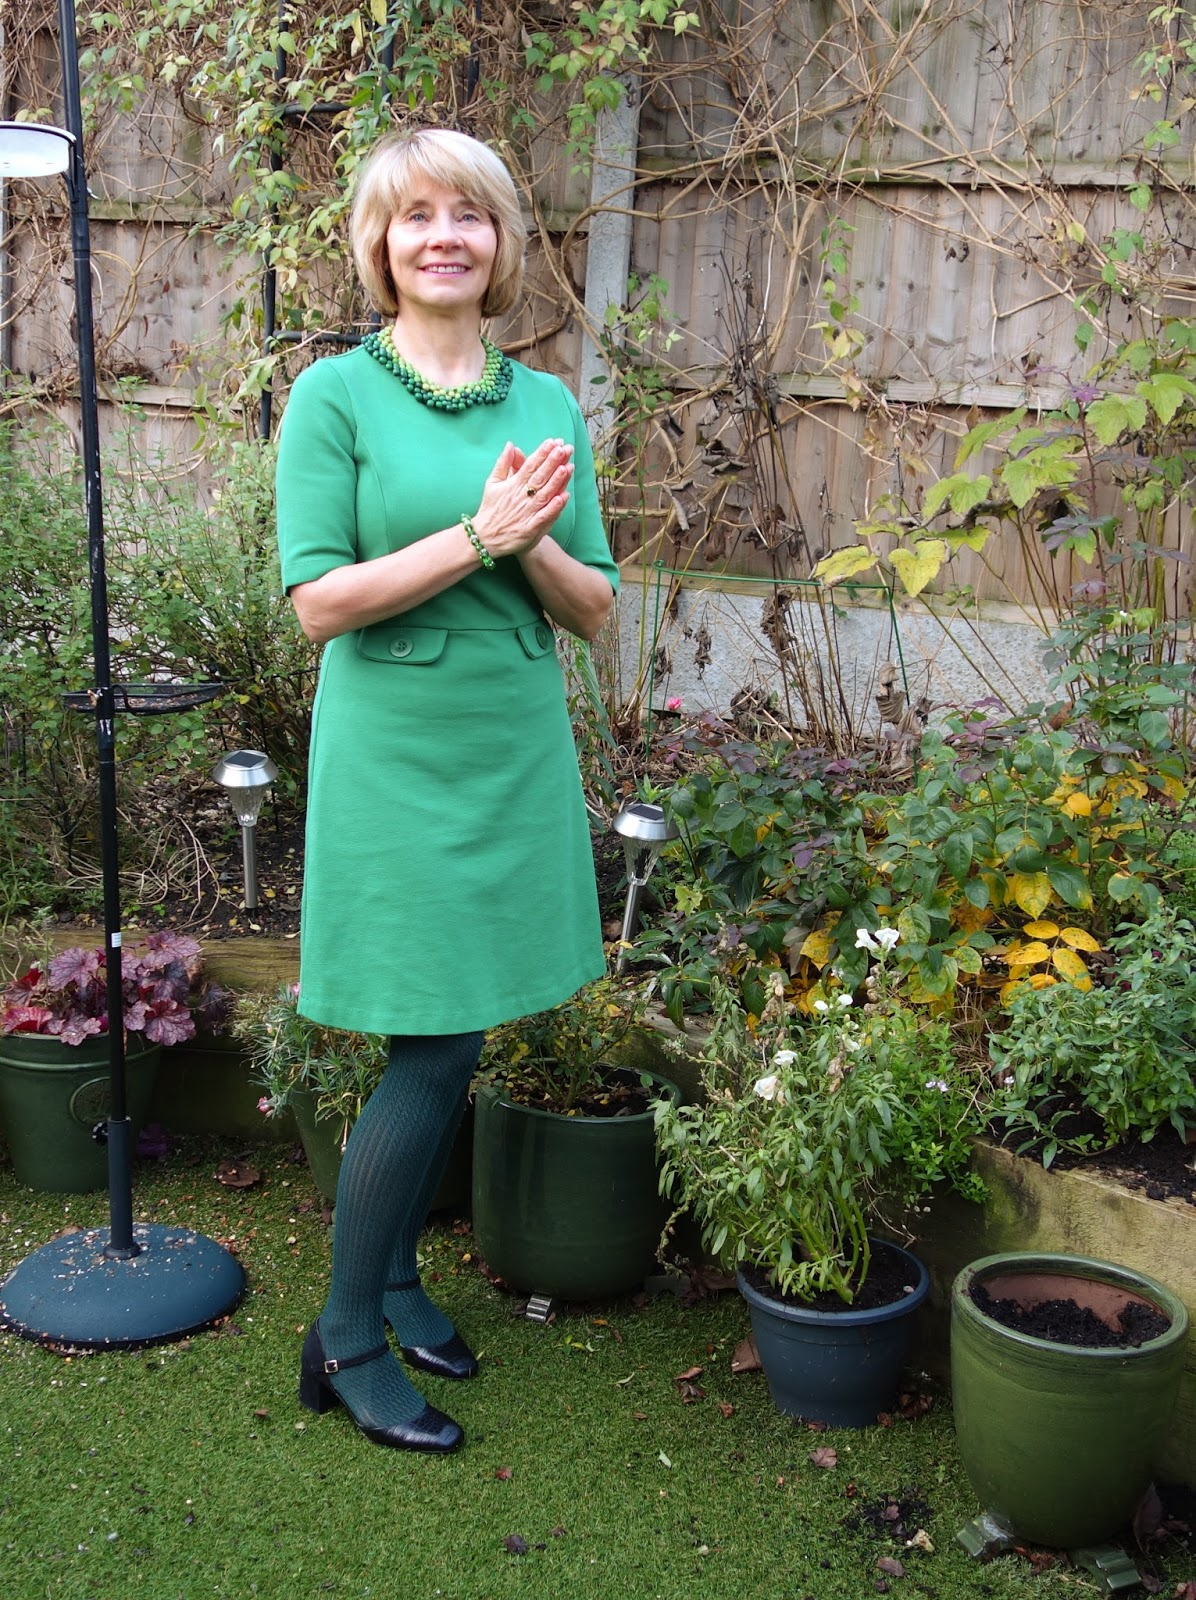 Green Boden dress worn with dark green patterned tights